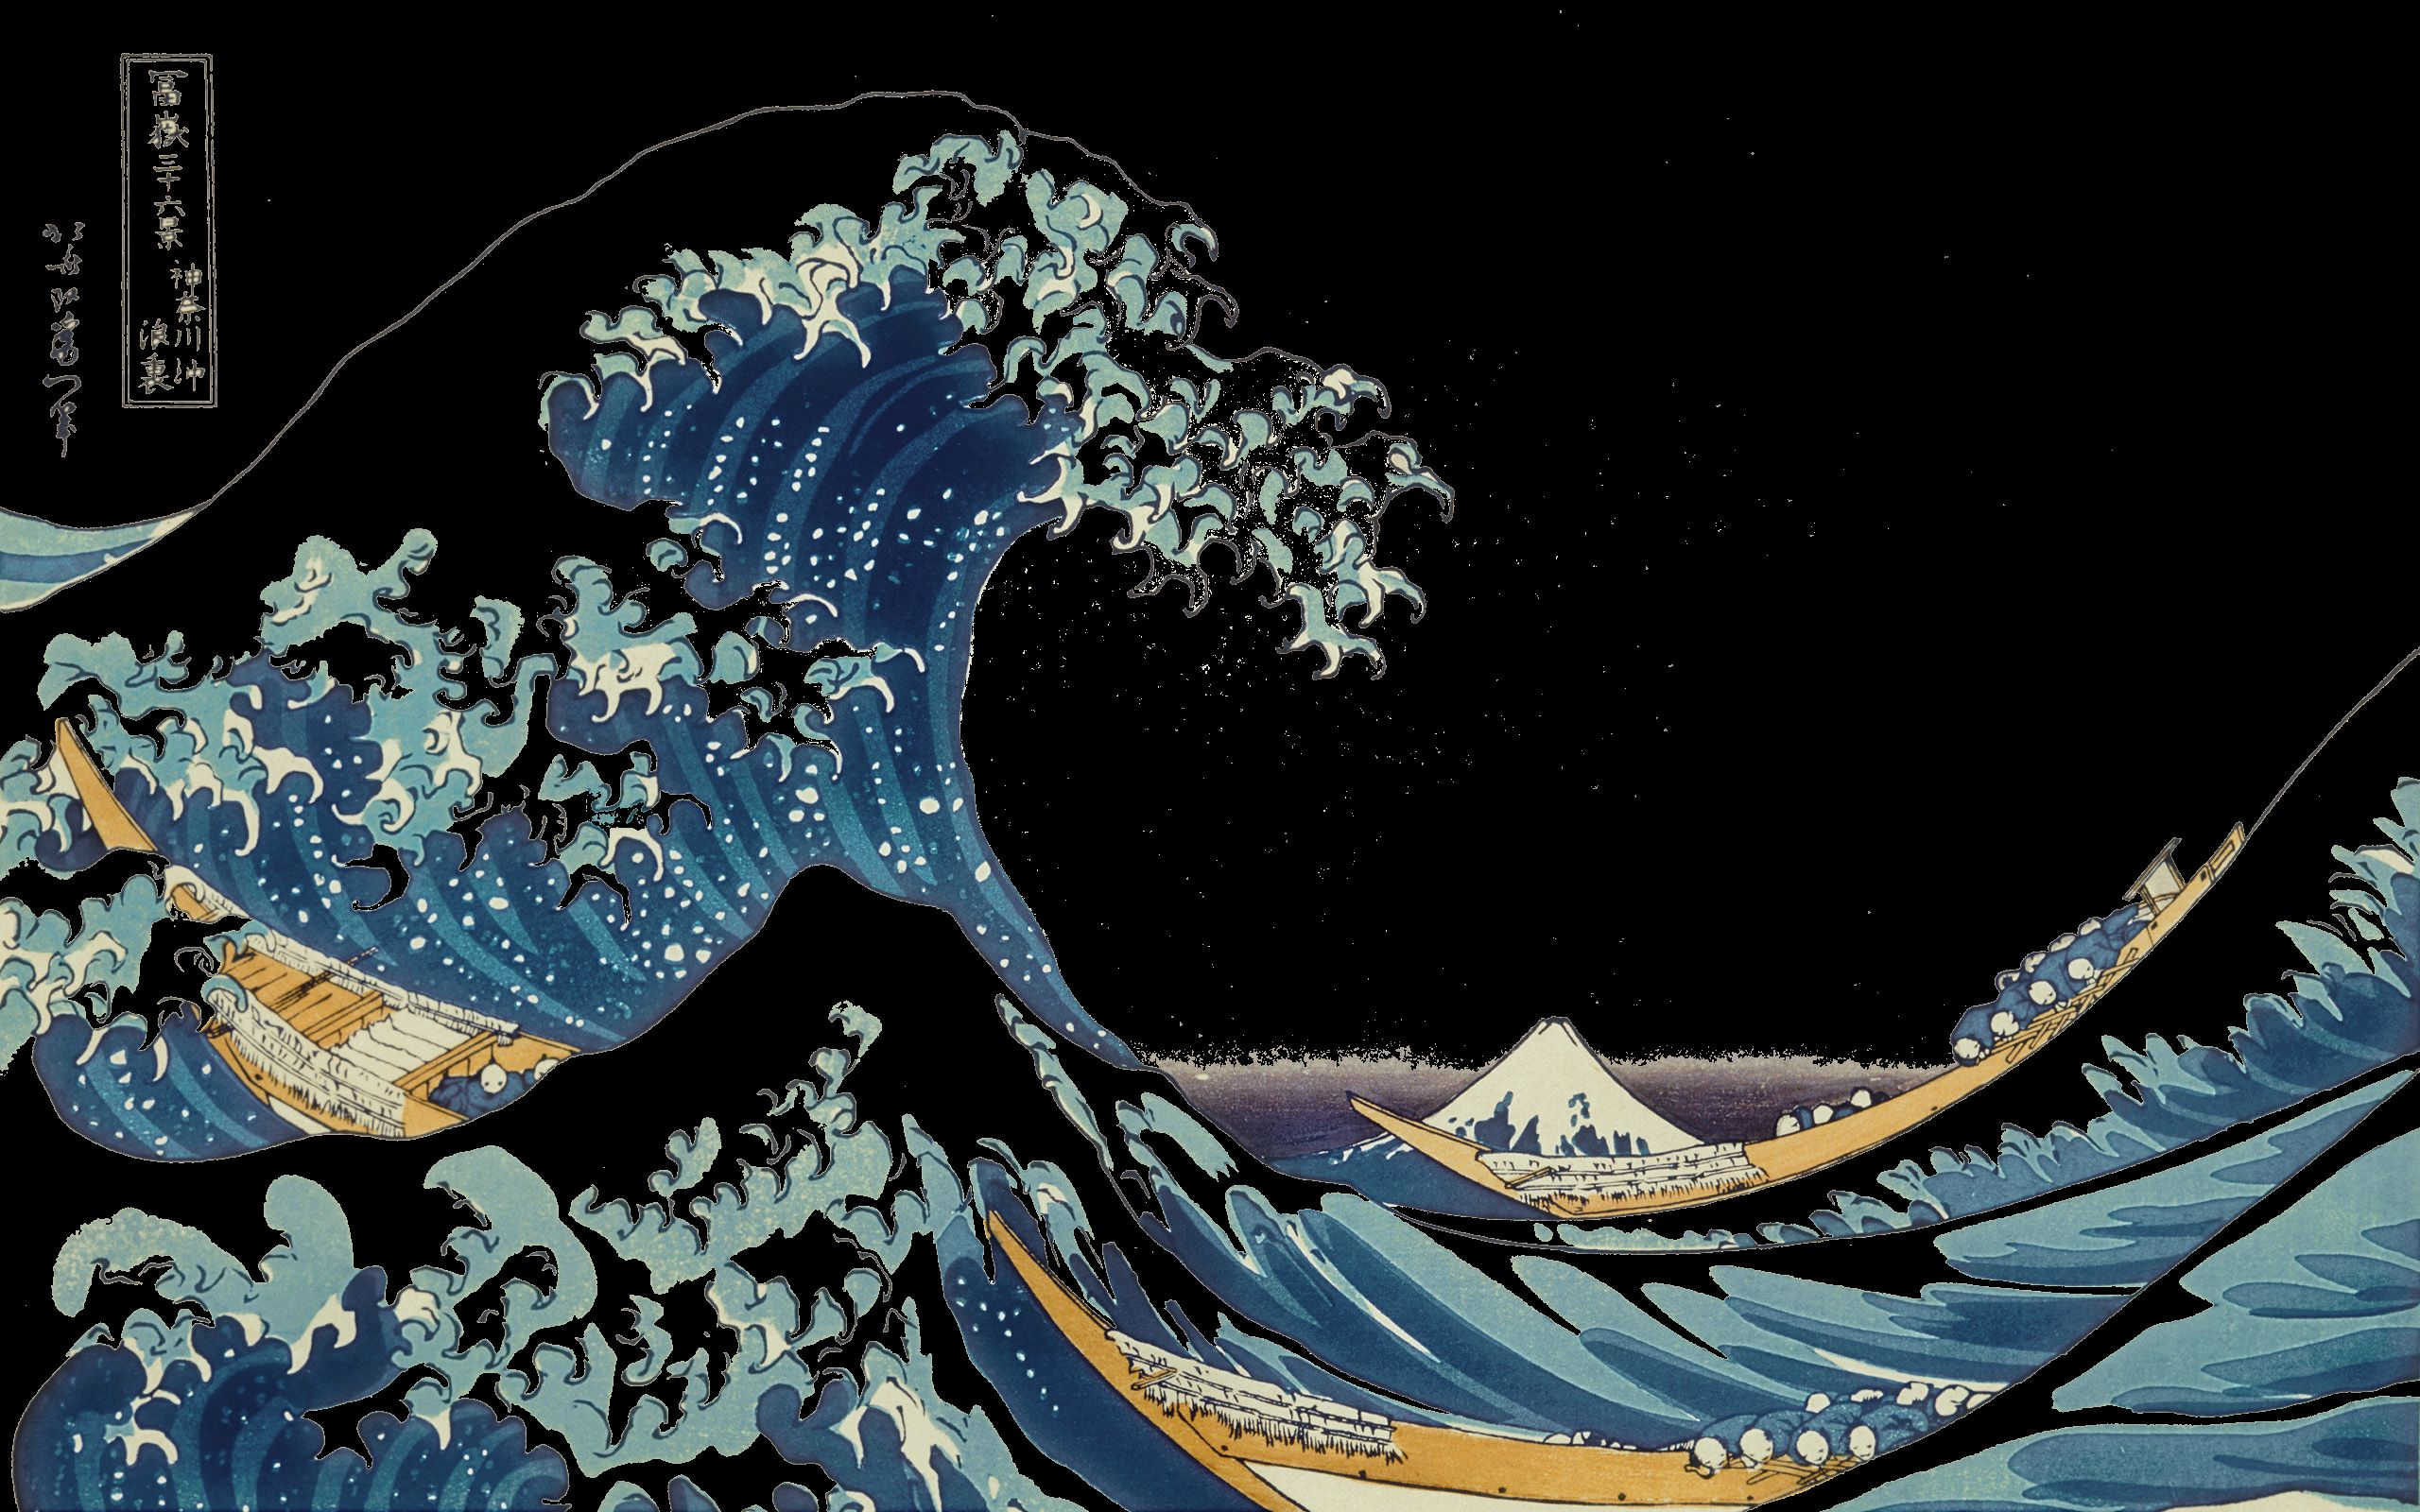 Artwork Inverted The Great Wave Off Kanagawa Hd Wallpaper View